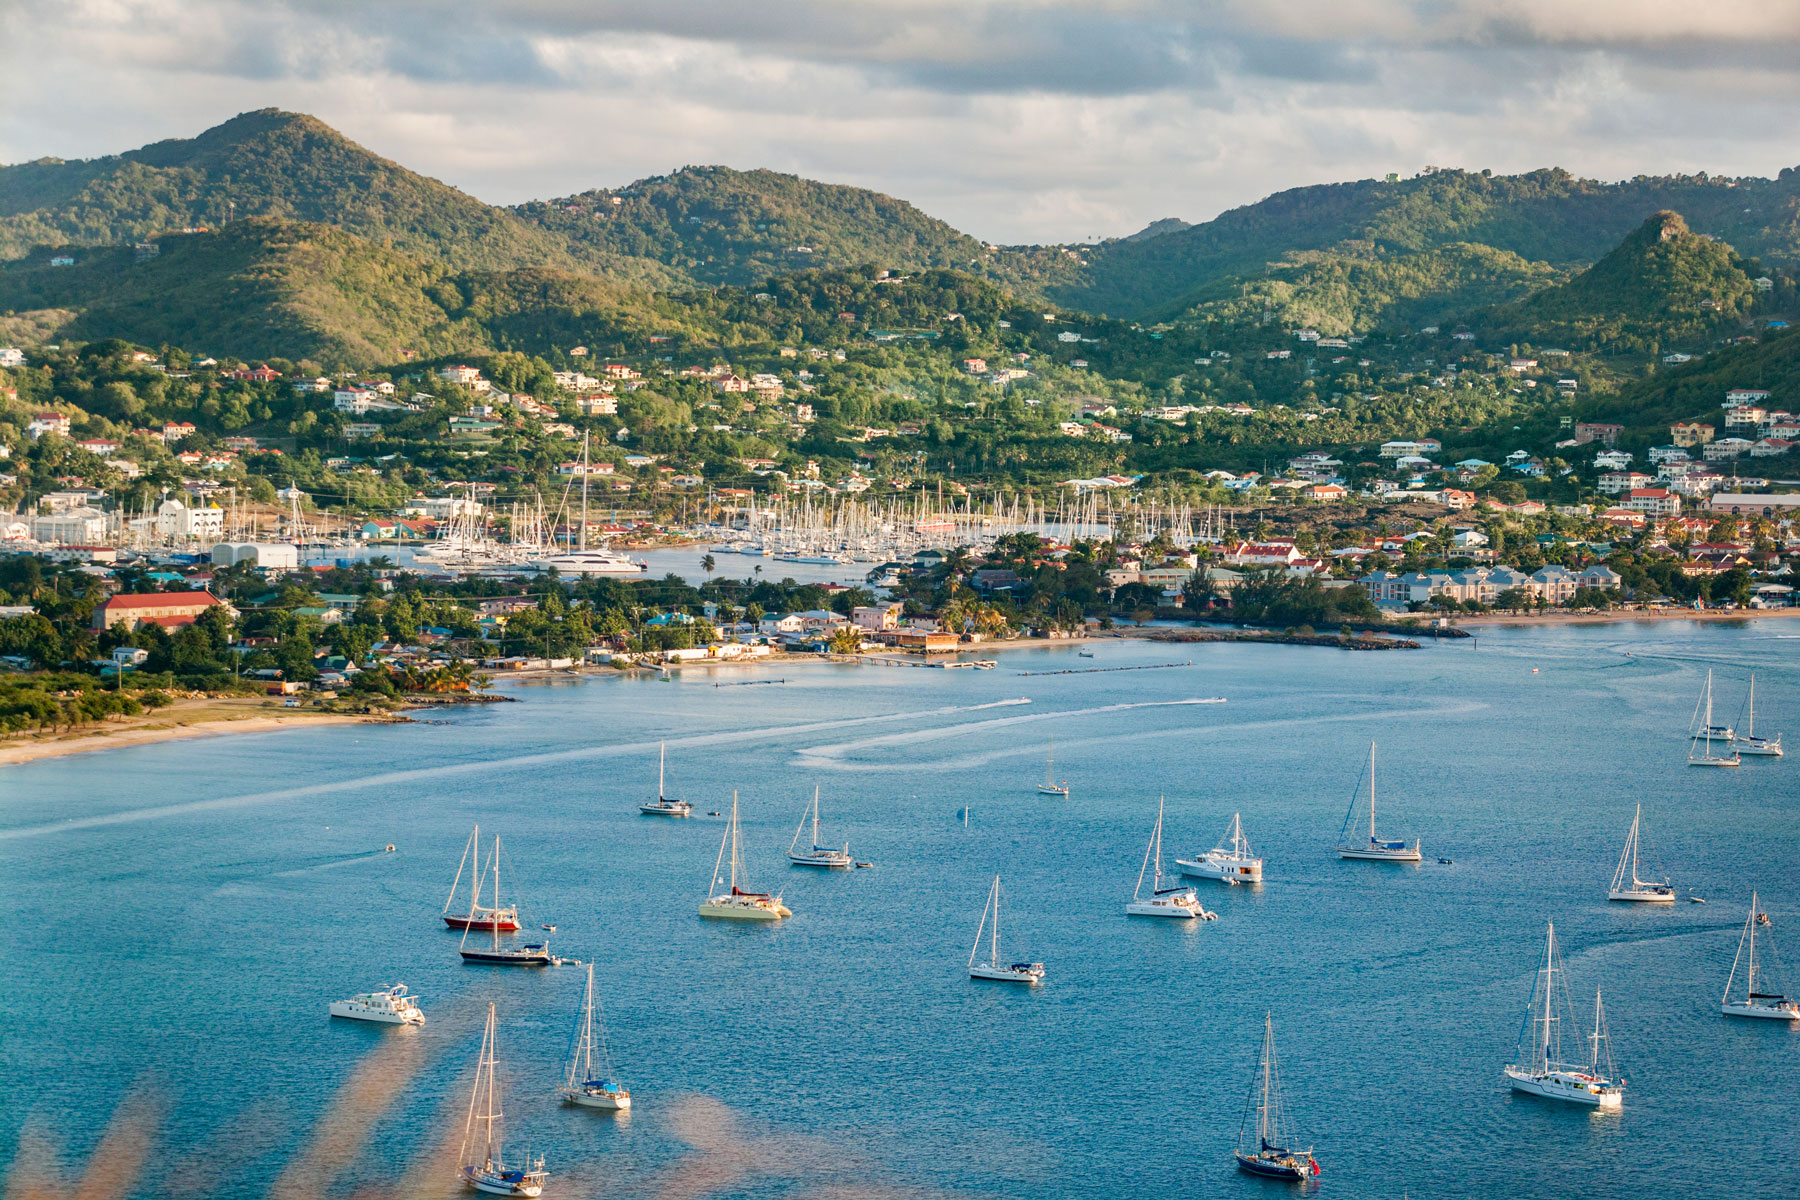 St.Lucia, windward Islands, West Indies